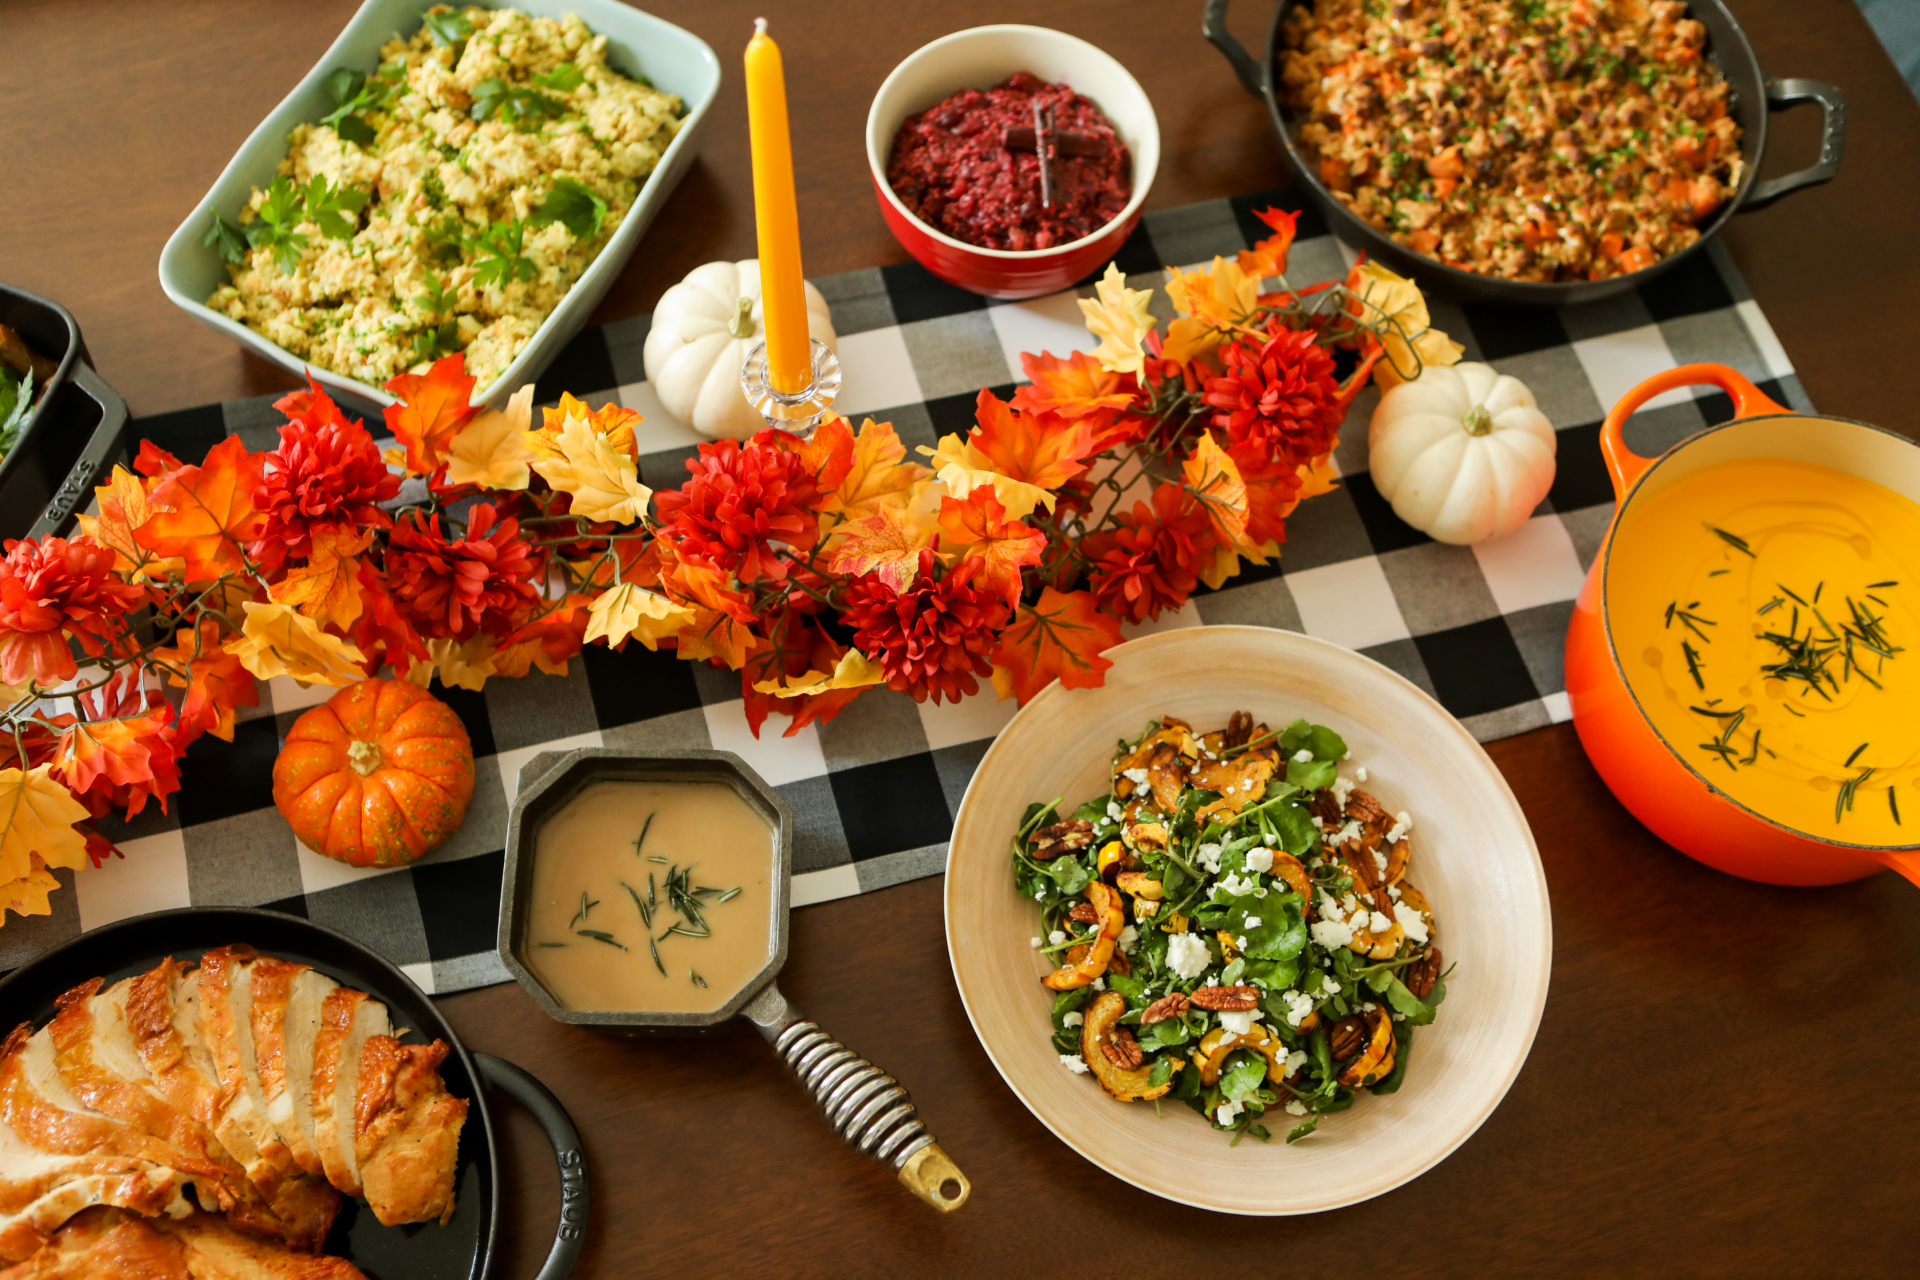 thanksgiving to go mean plated on a festive table with autumn leaves and pumpkins and fall candles